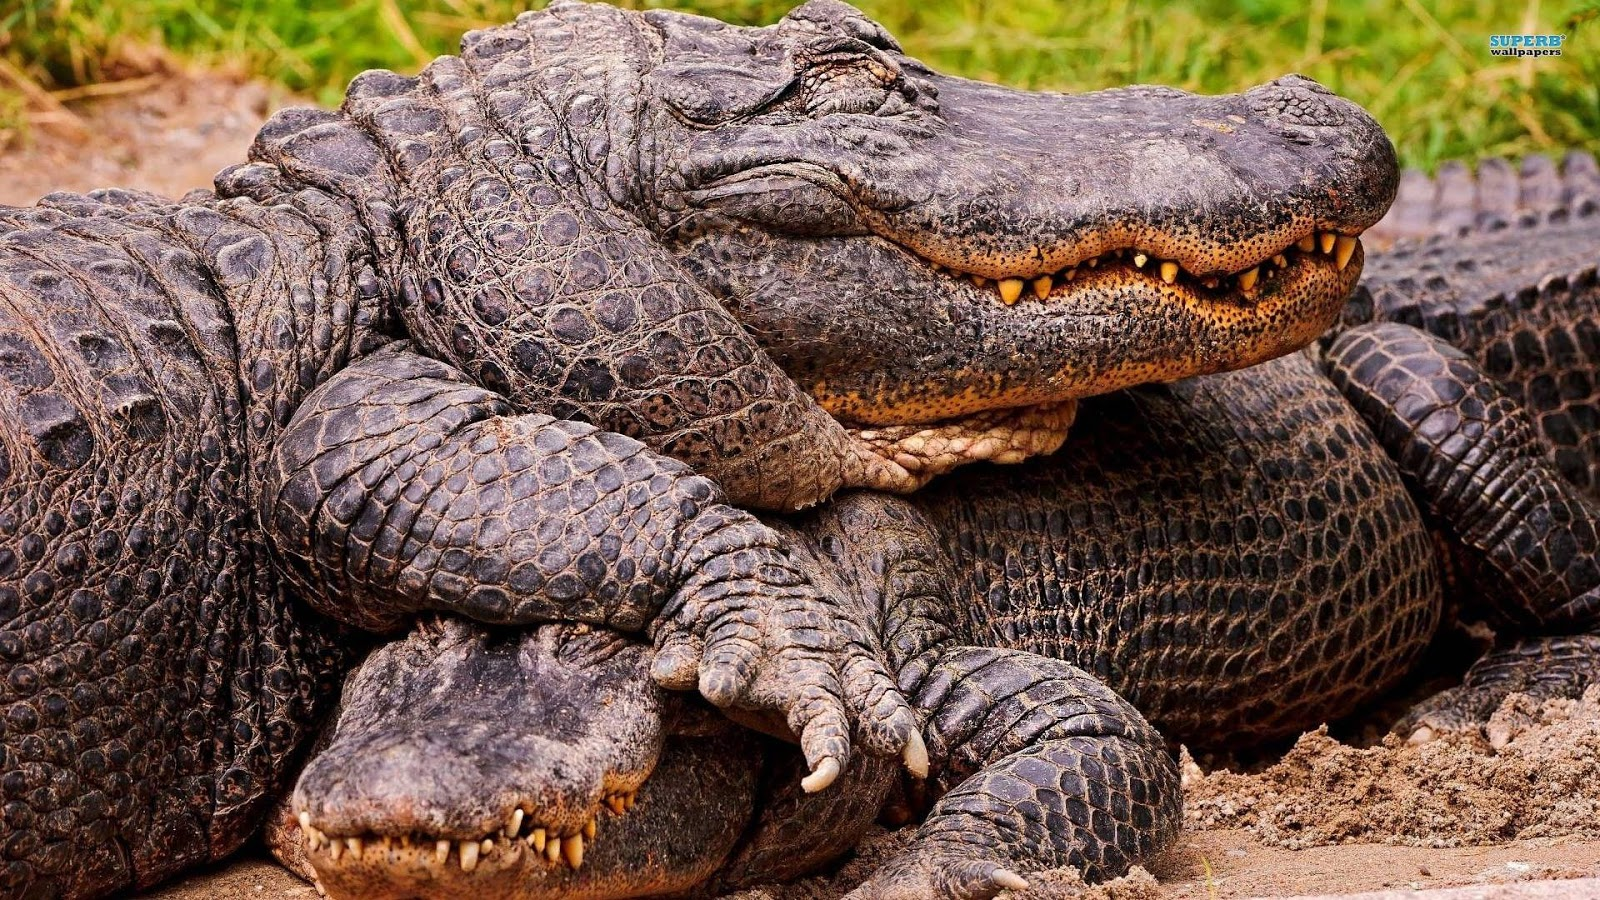 Alligator wallpapers picture